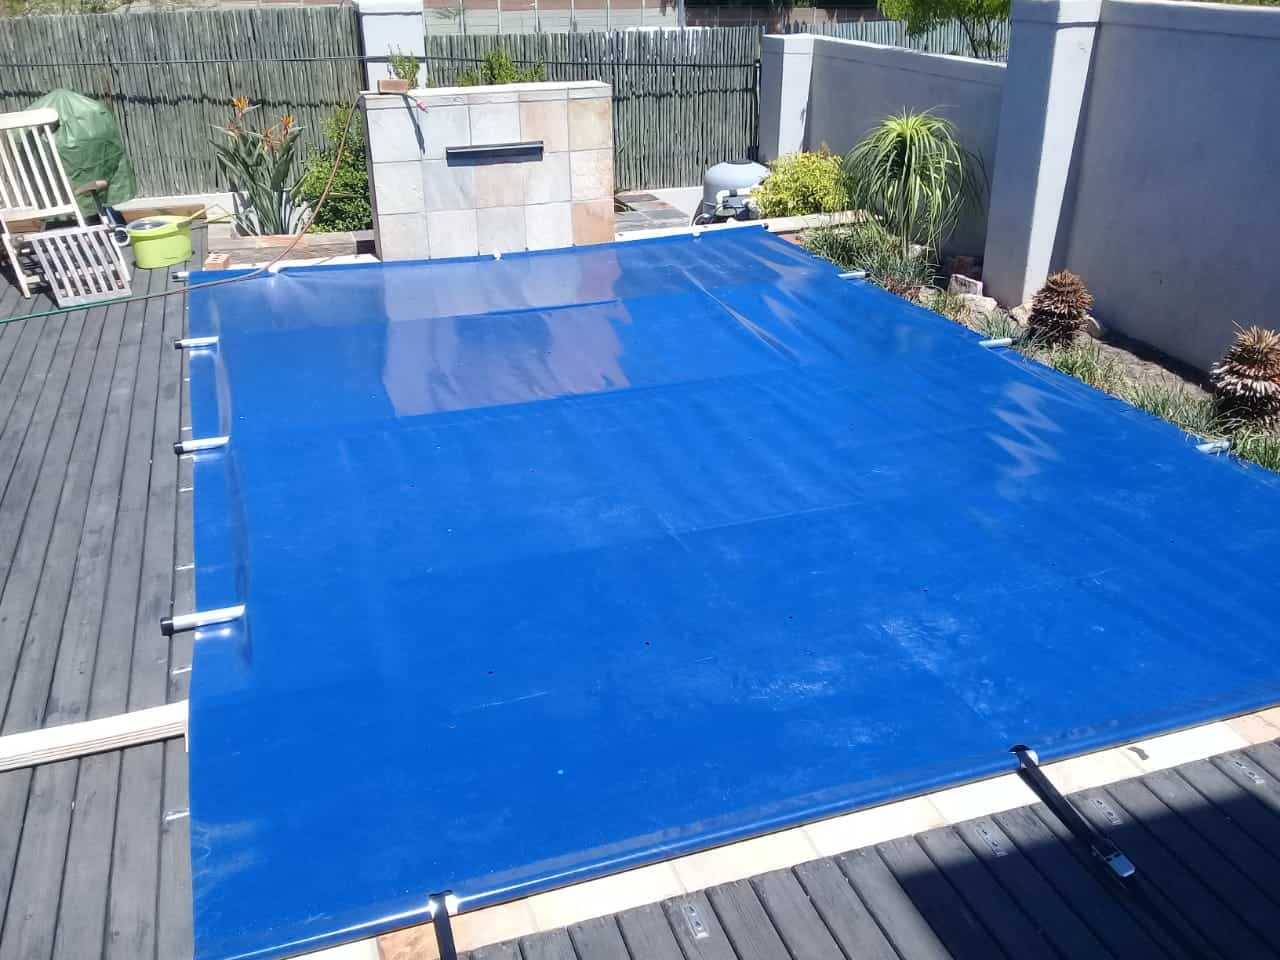 Pool Covers, Pool Covers, Pool Covers | Canvas Covers | Tarpaulin Covers | Outdoor Blinds